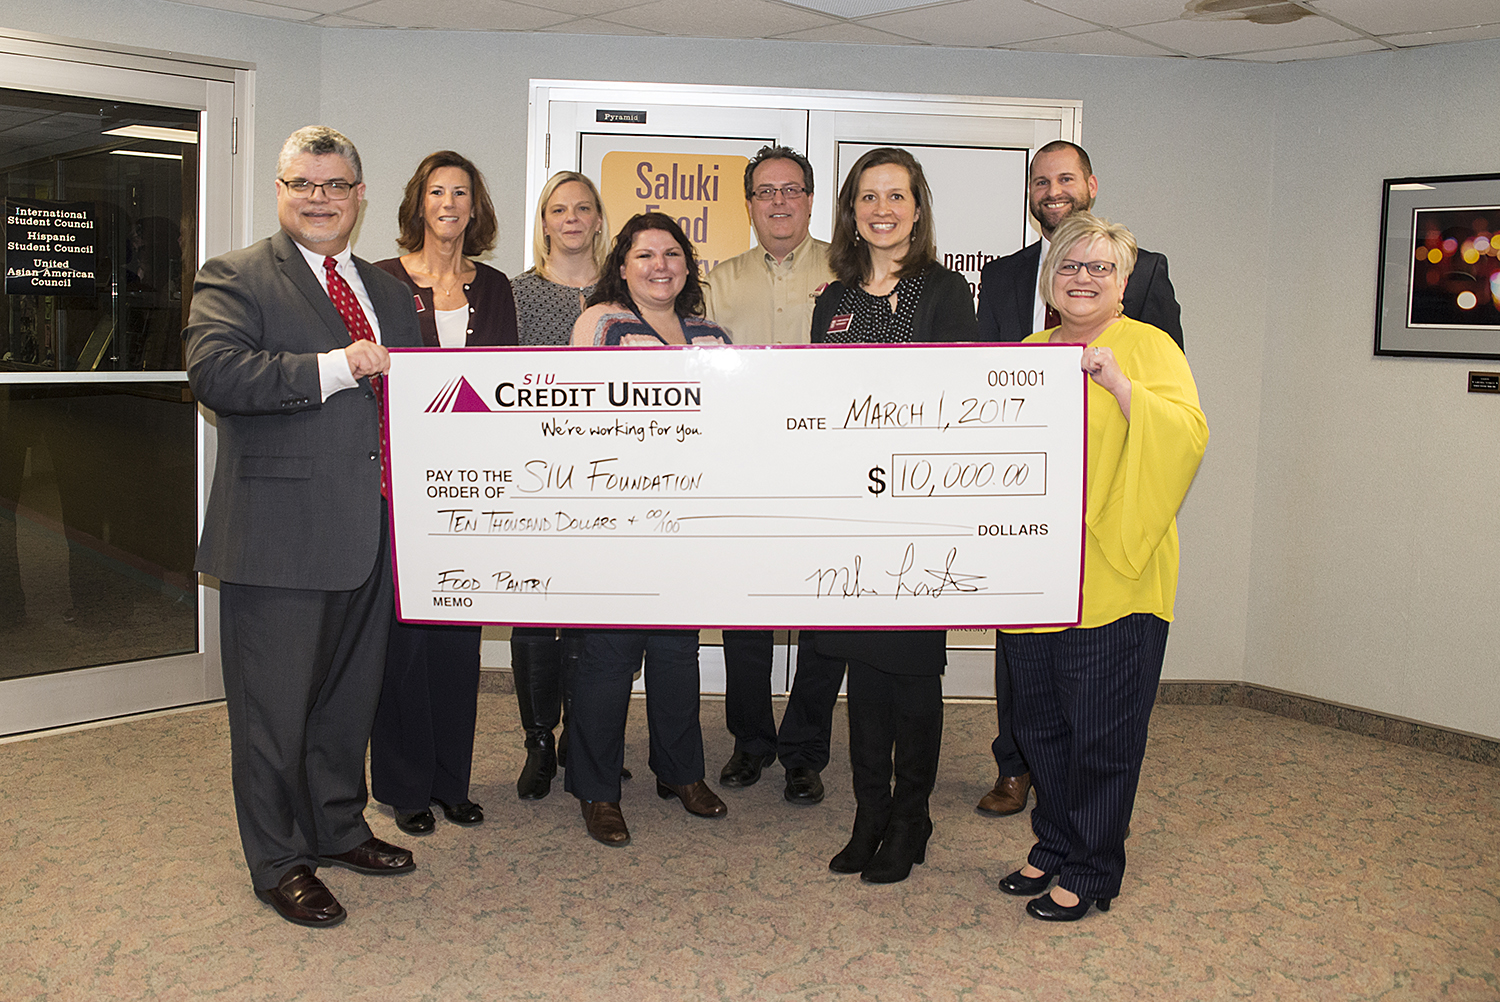 SIU Credit Union Makes First Corporate Gift for SIU Day of Giving